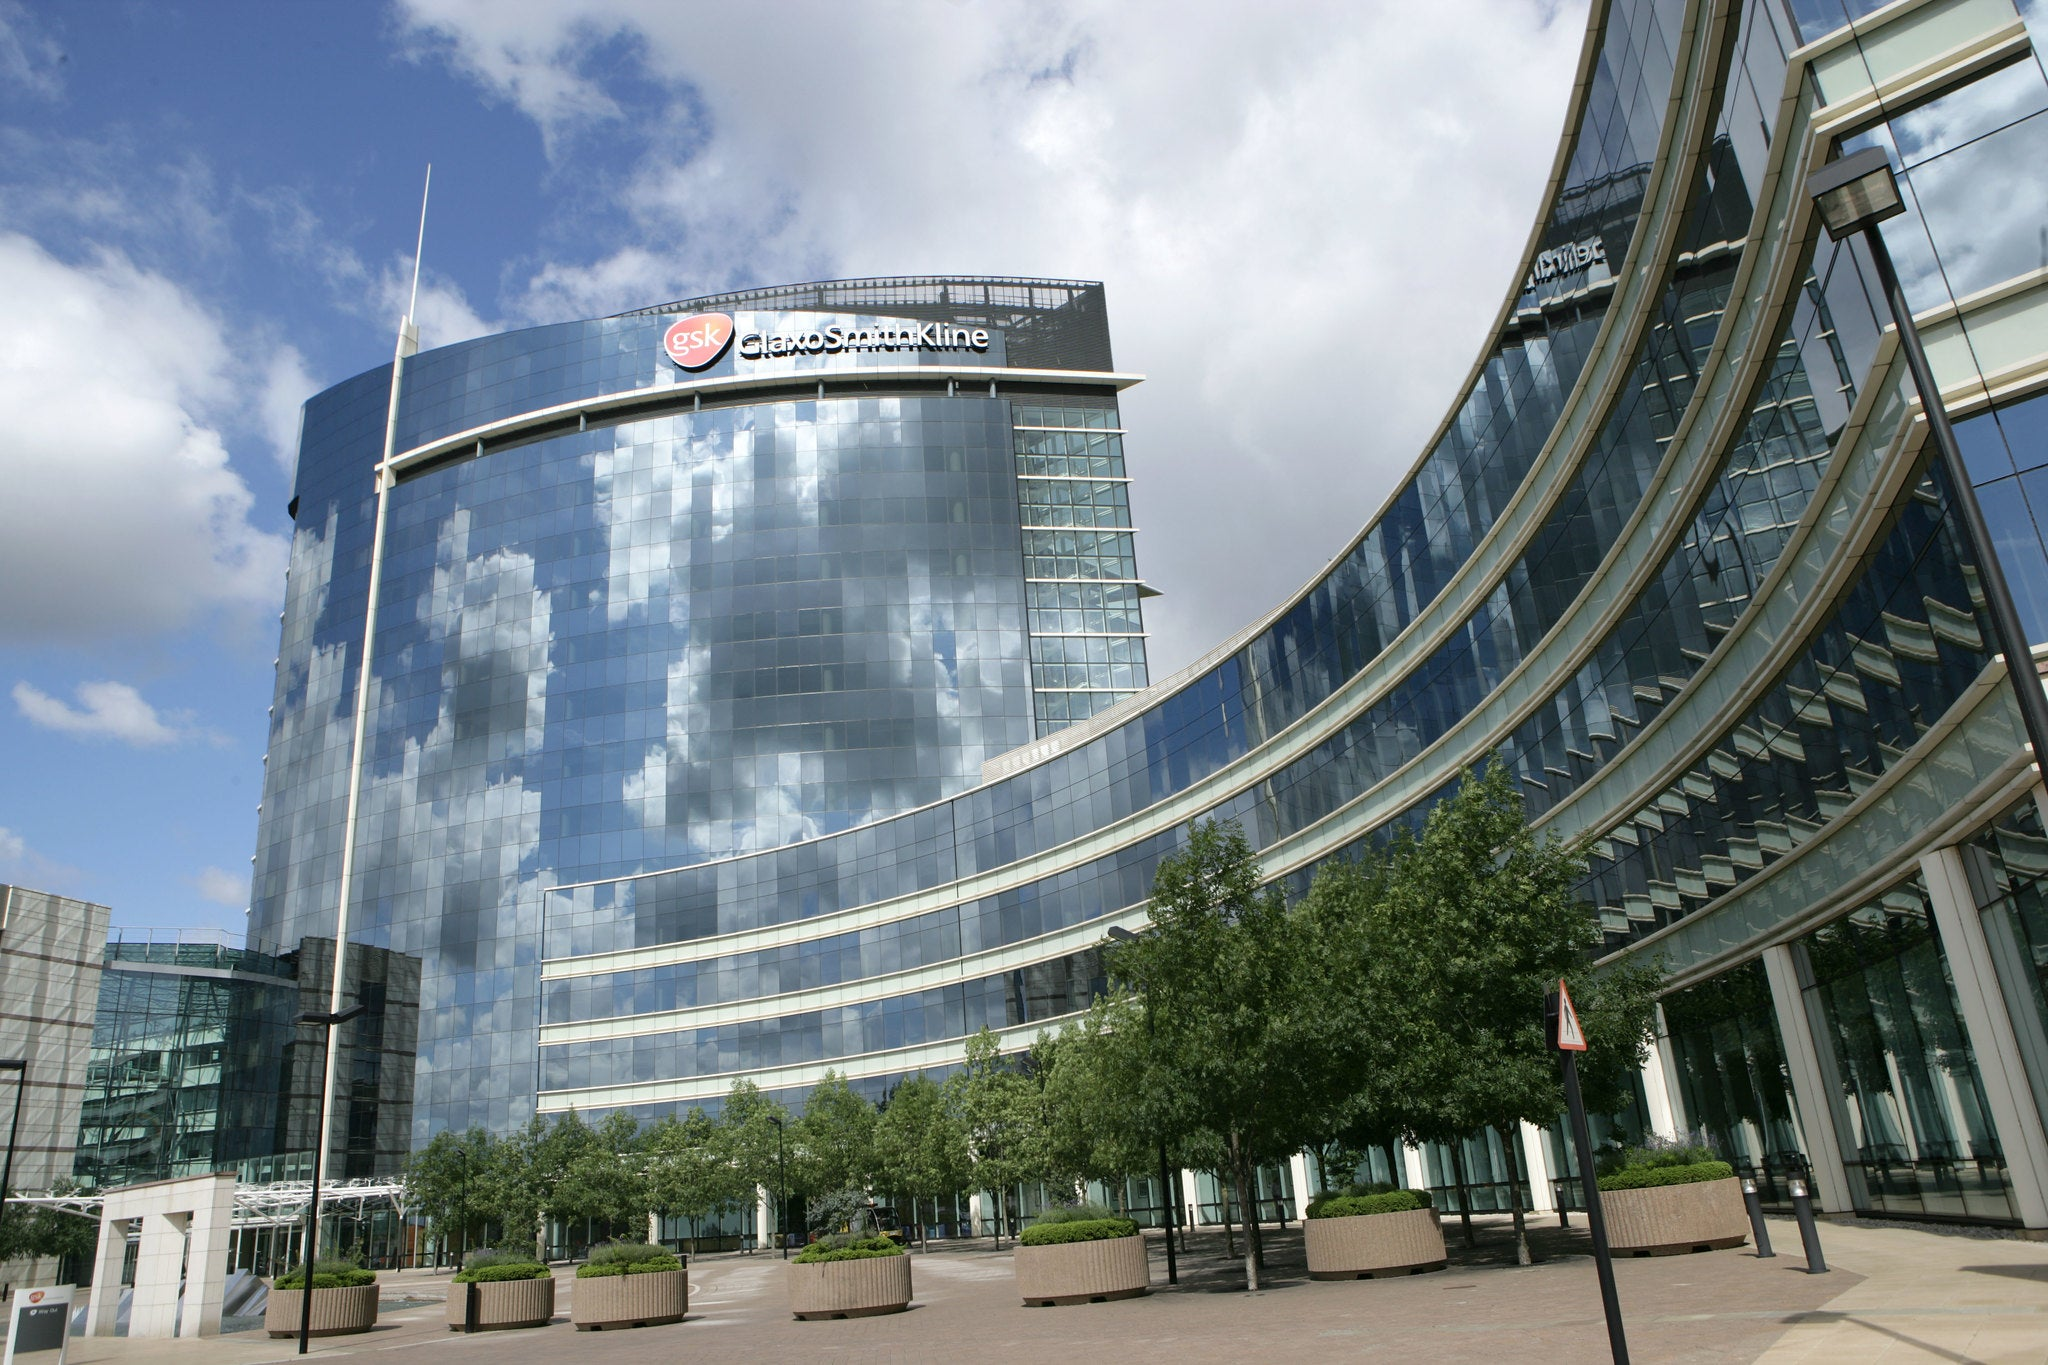 GlaxoSmithKline Cutting Up to 720 Jobs at European Vaccine Facility | The Motley Fool